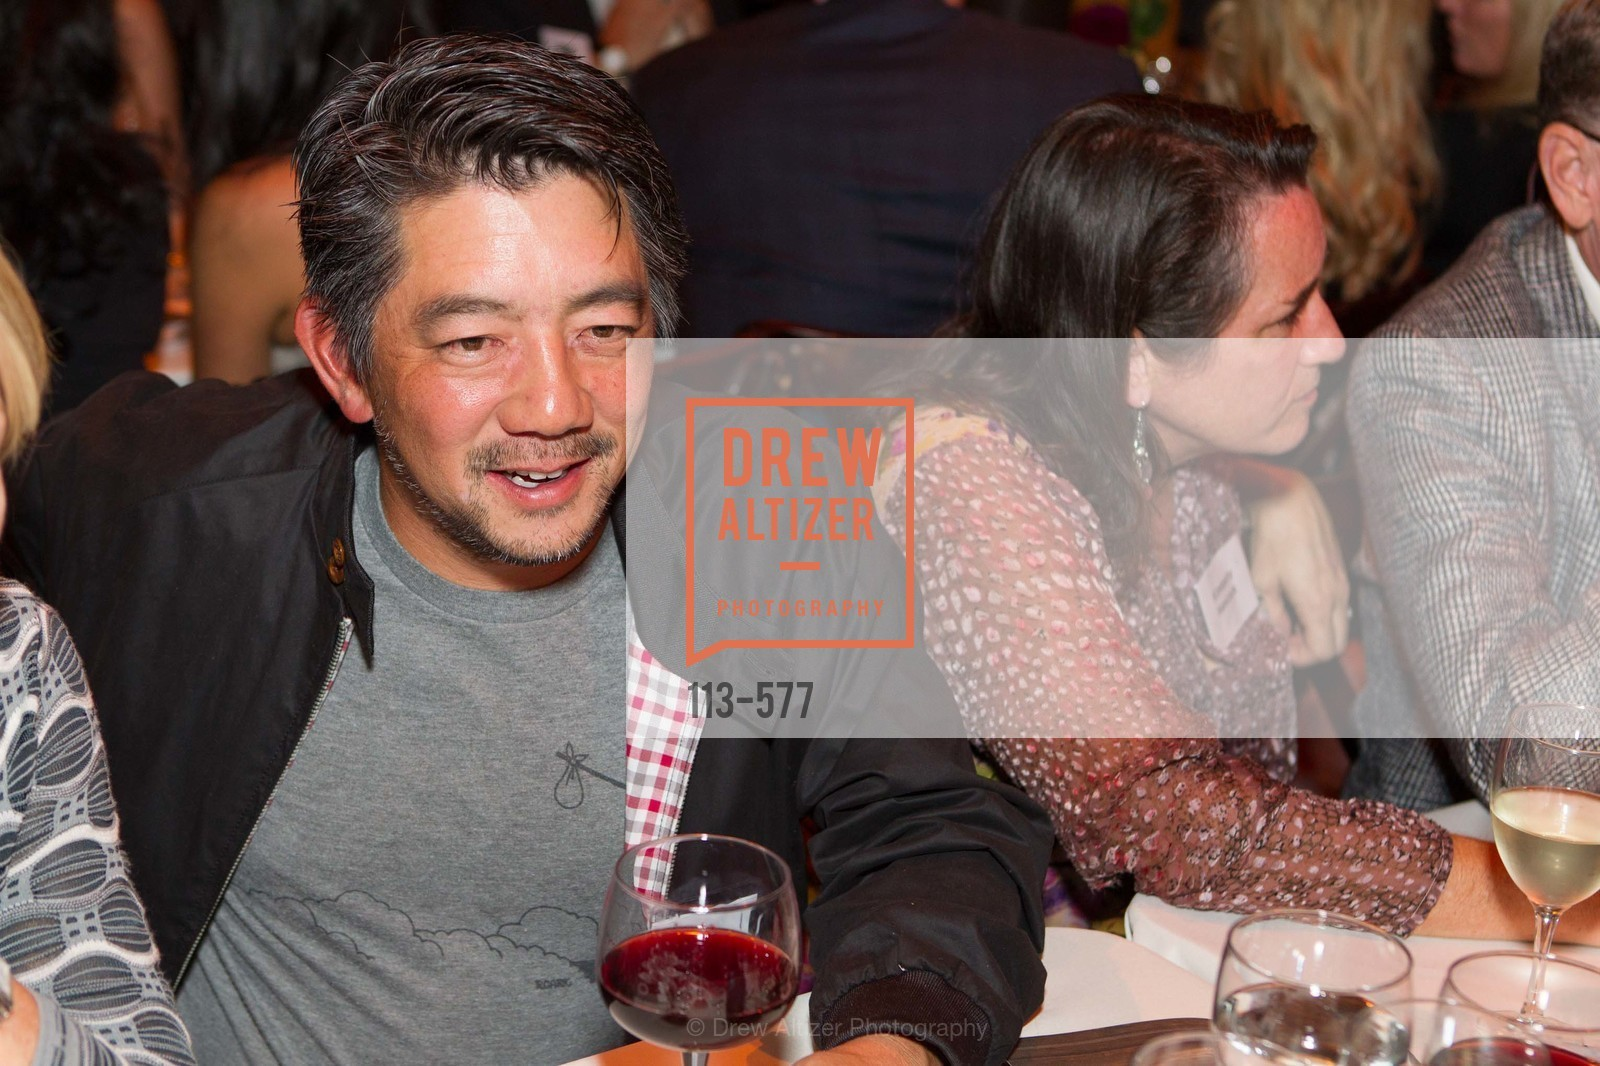 Paul Nakama, SF-MARIN FOOD BANK One Big Table Gala, US, September 27th, 2014,Drew Altizer, Drew Altizer Photography, full-service event agency, private events, San Francisco photographer, photographer California